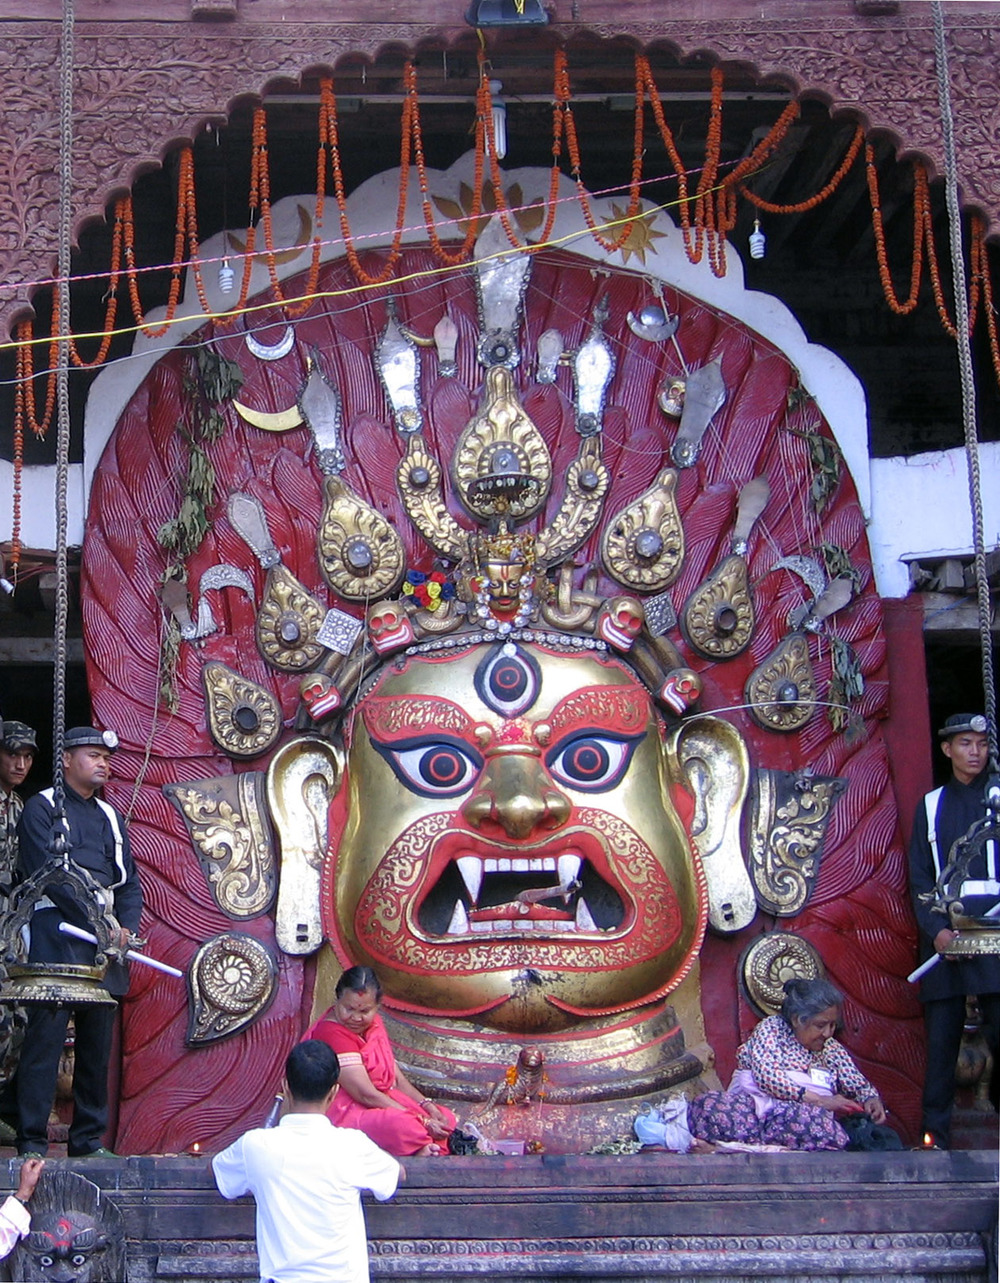 The face of Bhairava as worshipped in the Kathmandu Valley, Nepāl.